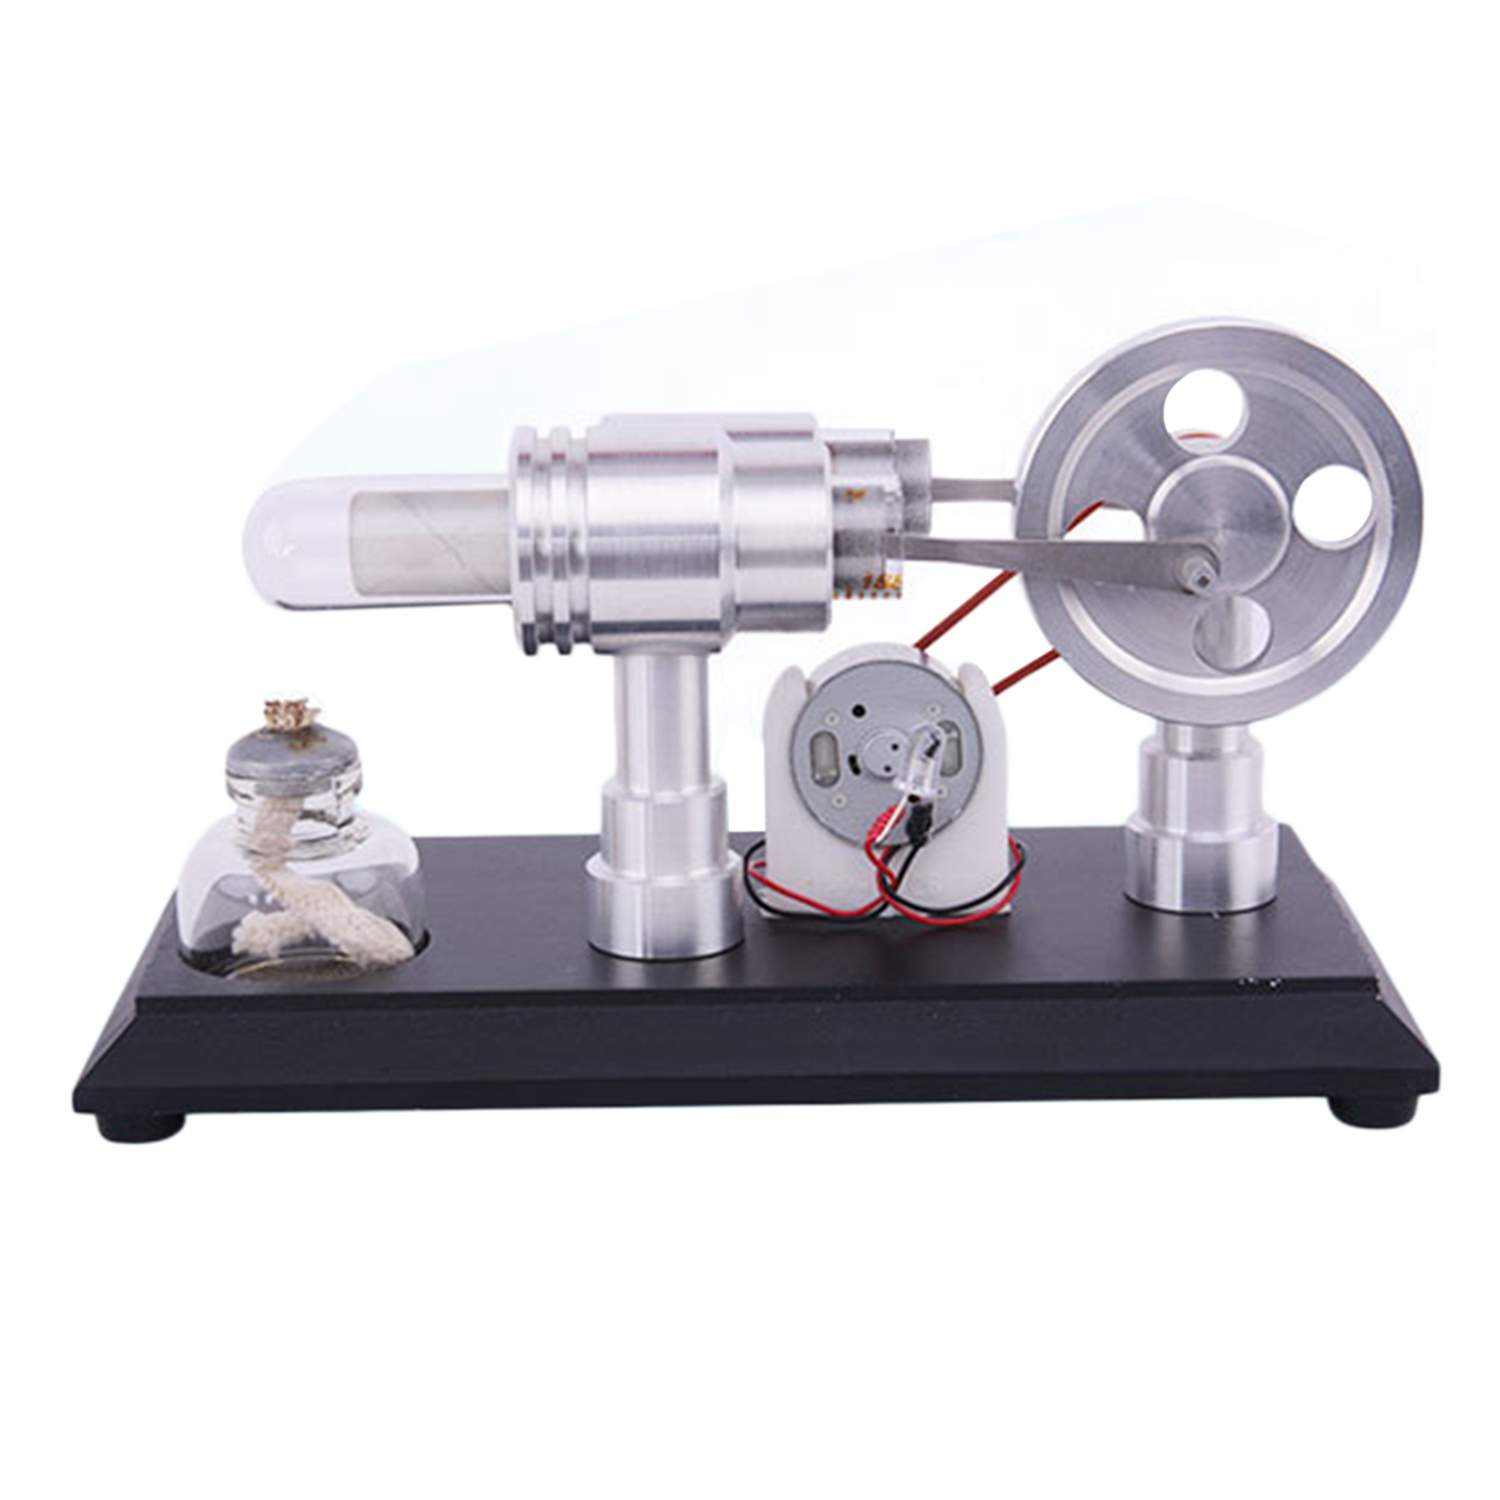 Double Cylinder Micro Diy Hot Air Stirling Engine Motor Model External Combustion Engine Early Learning Education